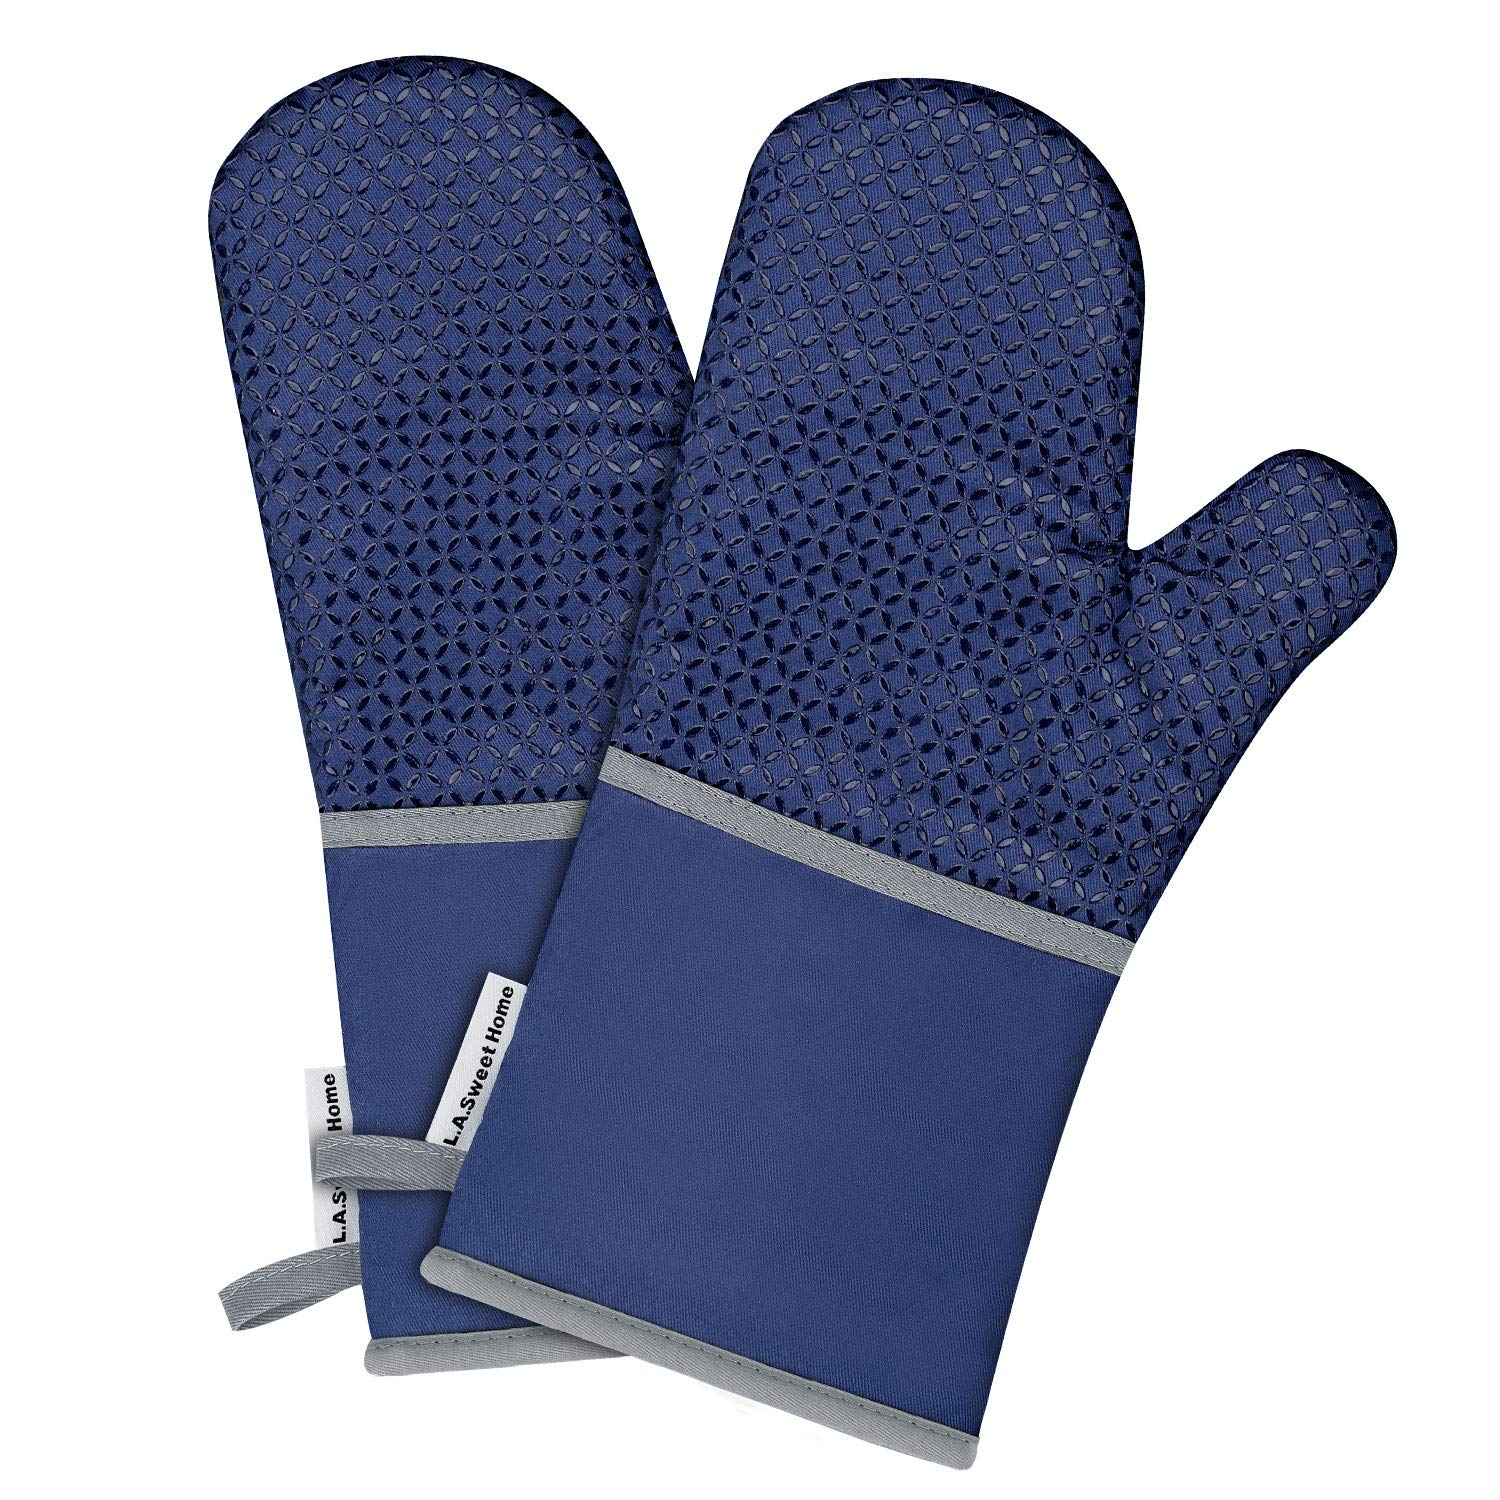 L.A. Sweet Home 14 Inch Silicone Oven Mitts Solid Printed Pattern Heat Resistant Potholders Cooking Gloves Non-Slip Barbecue Gloves